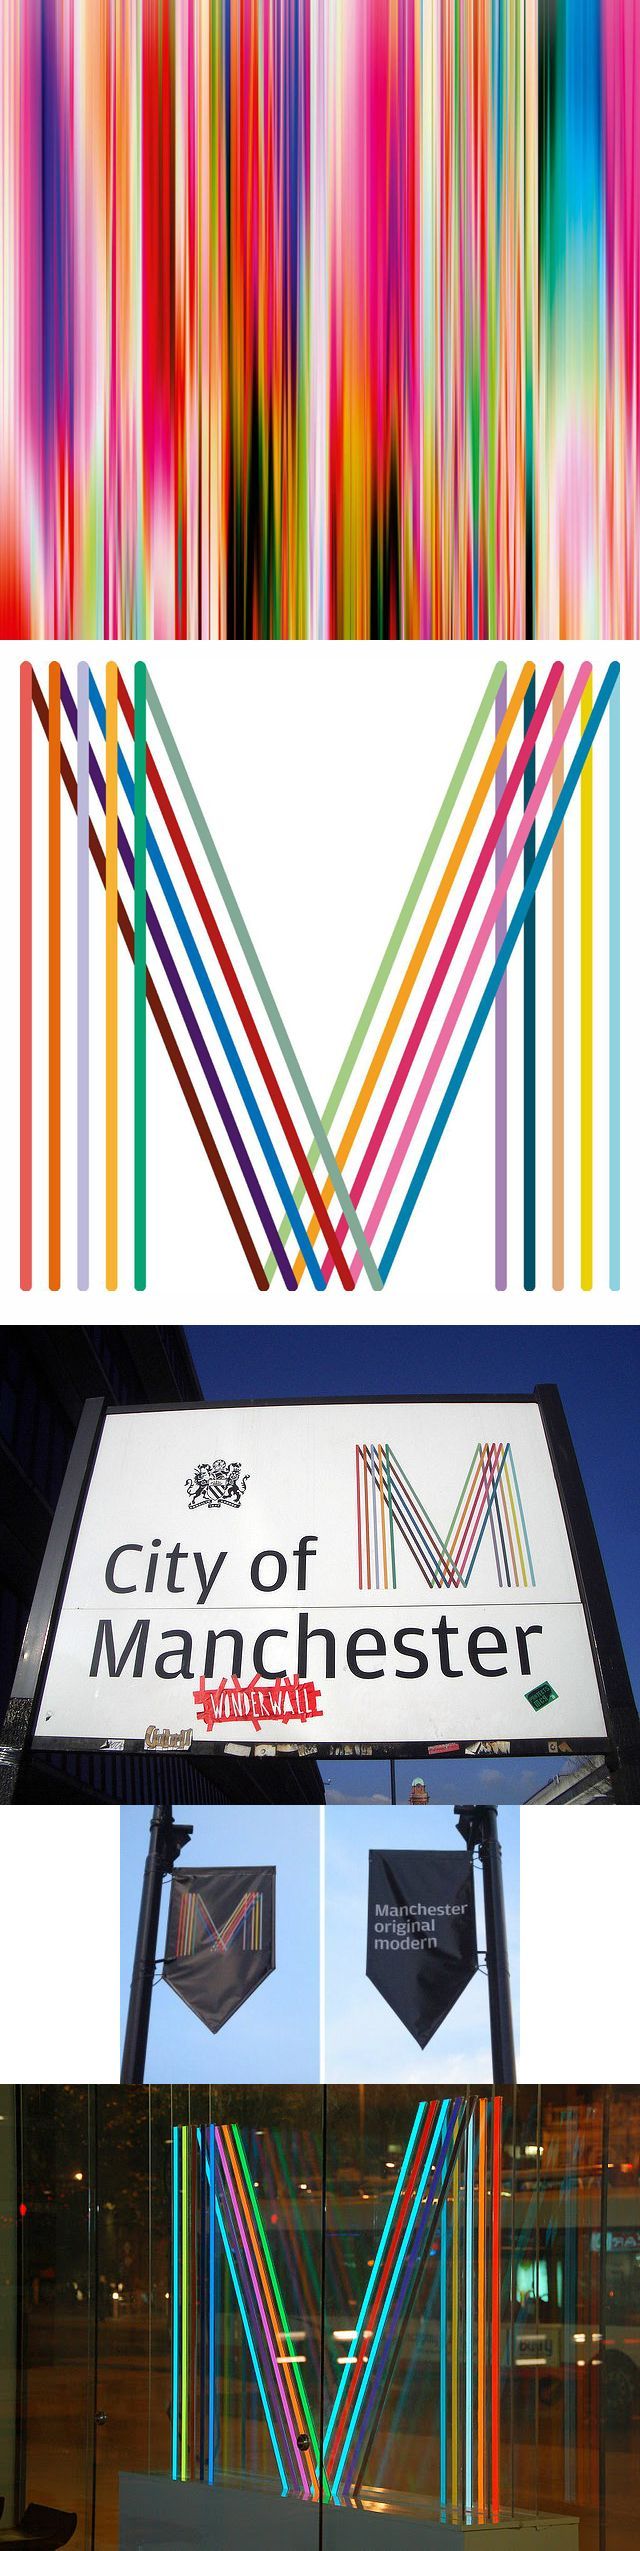 Logo for the city of Manchester, England, by Peter Saville. Логотип Манчестера, Англия, дизайнер Питер Сэвилл. #city_brand 2010